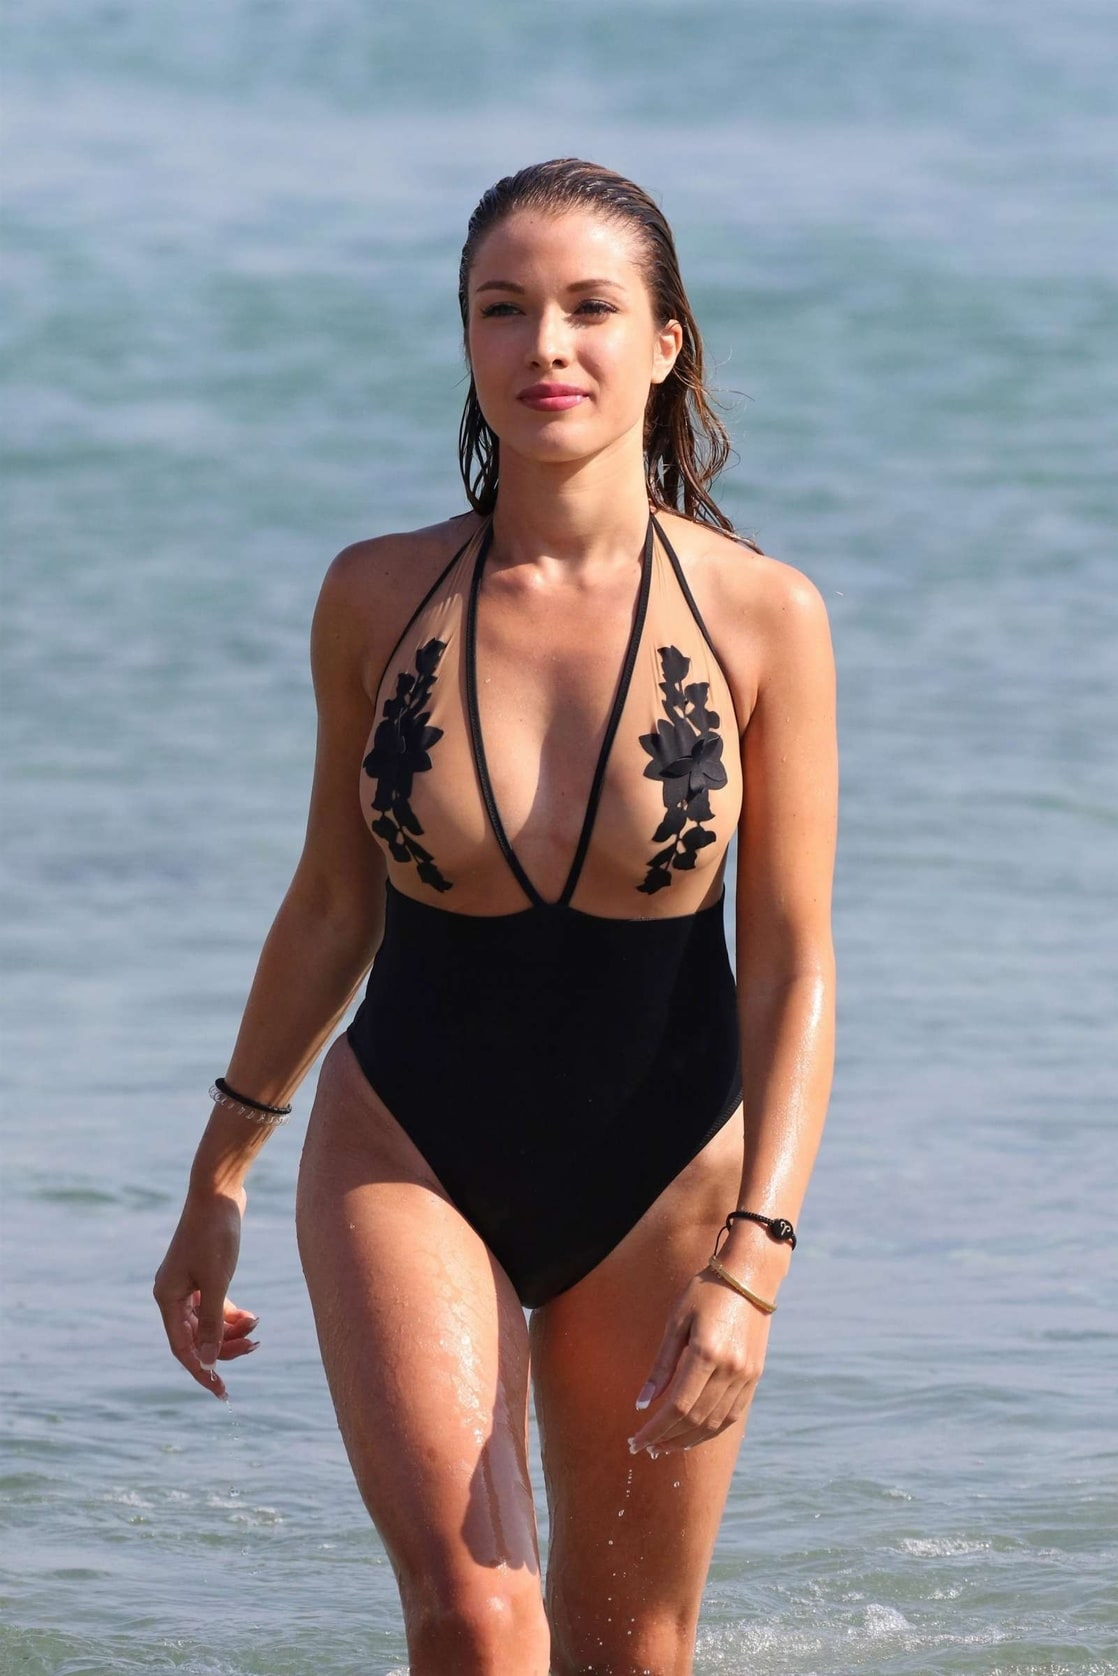 Hot Catarina Sikiniotis nude (74 photos), Topless, Bikini, Instagram, underwear 2020